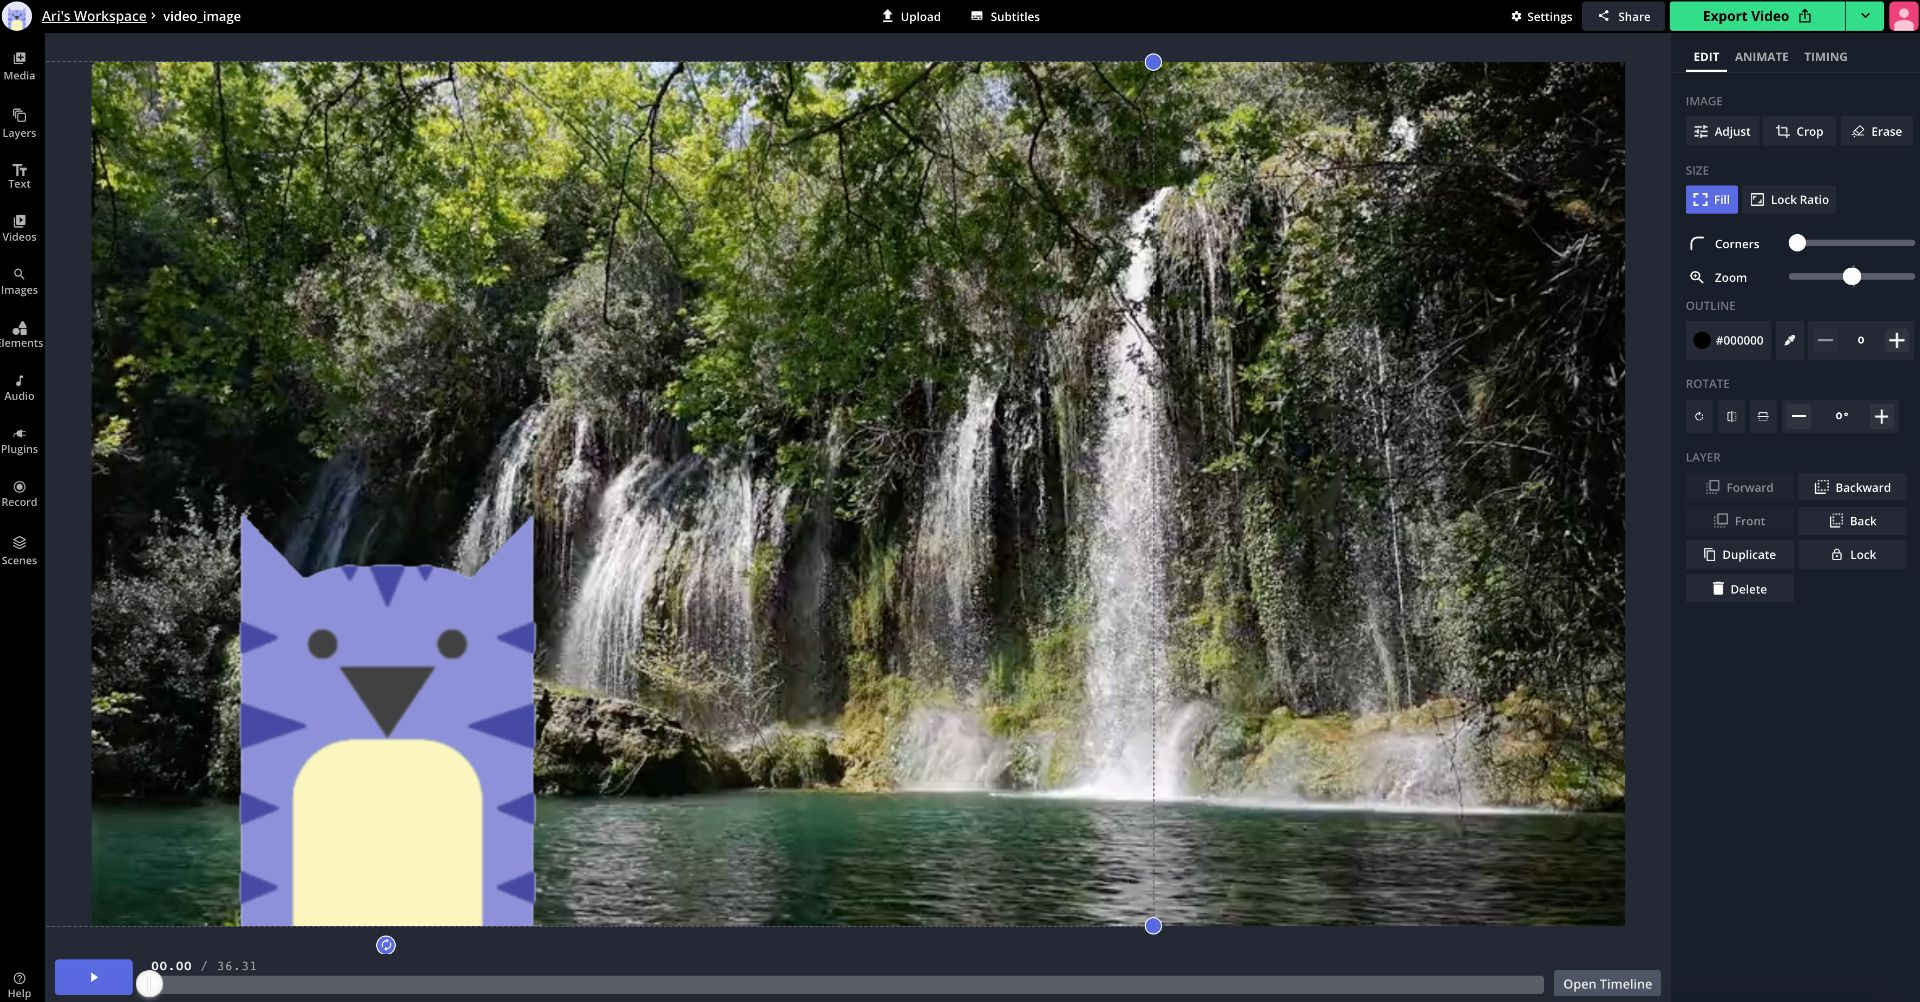 A screenshot showing how to add pictures to videos in the Kapwing Studio.